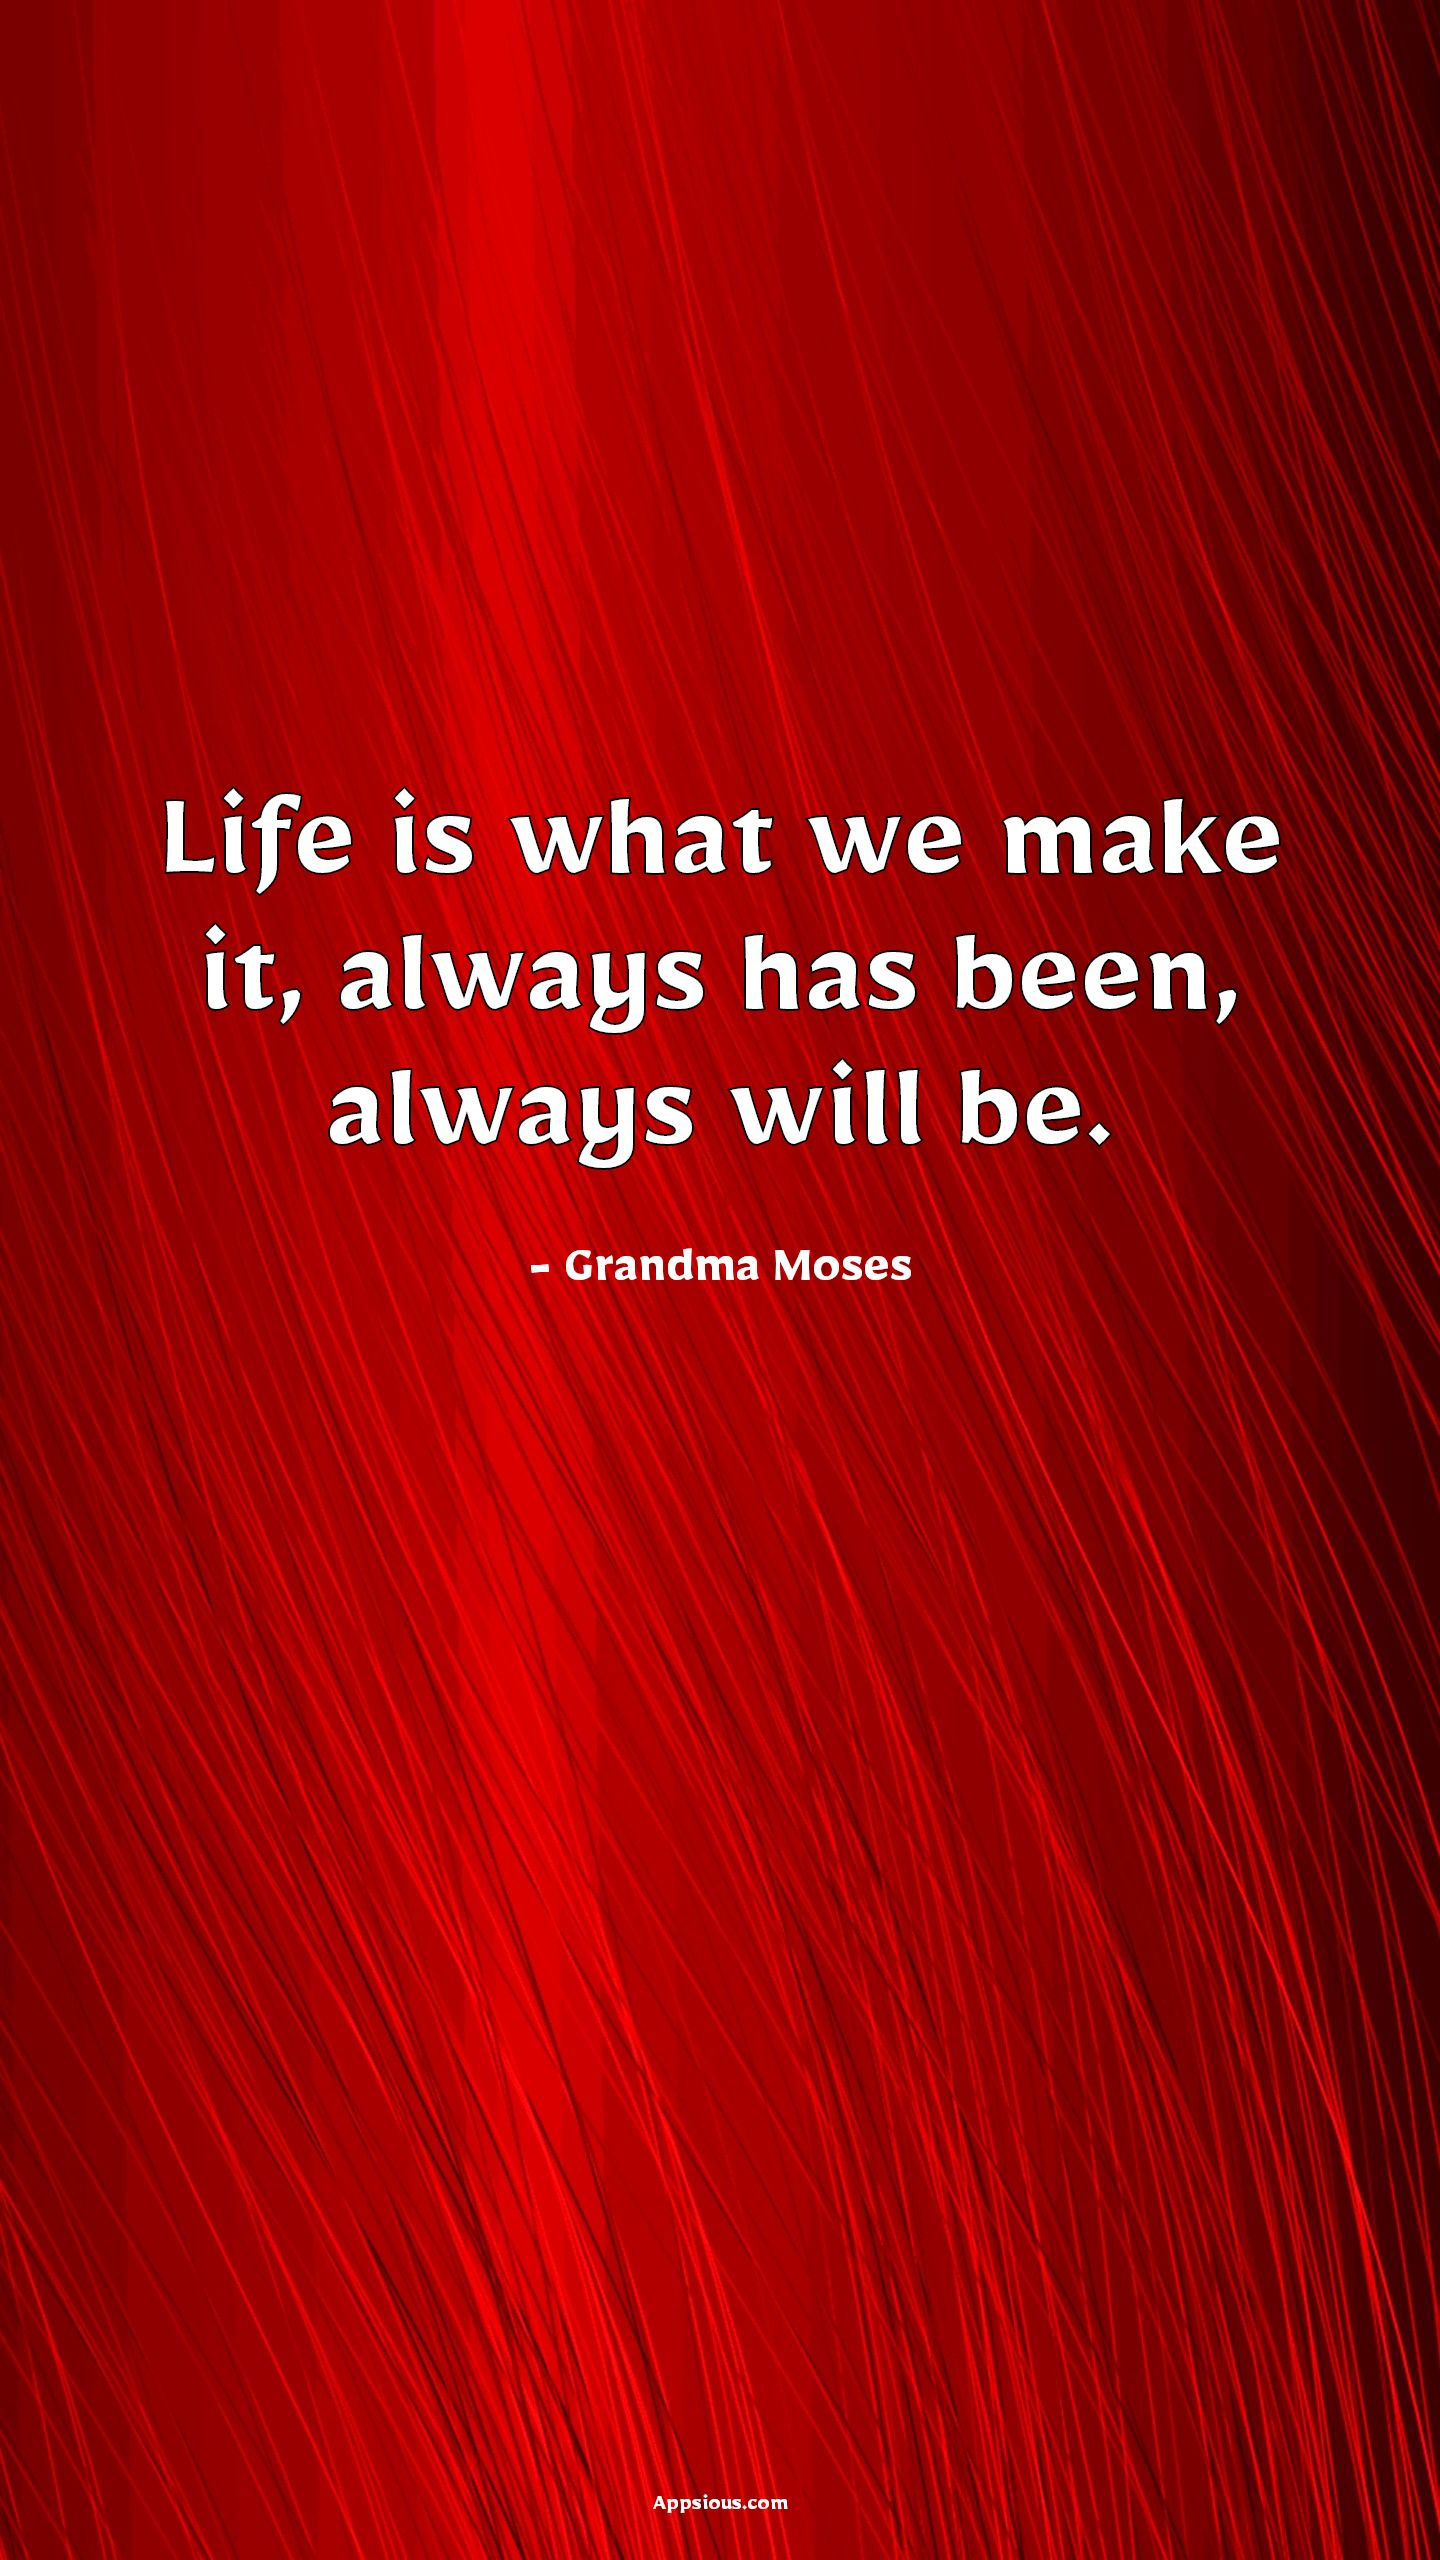 Life is what we make it, always has been, always will be.